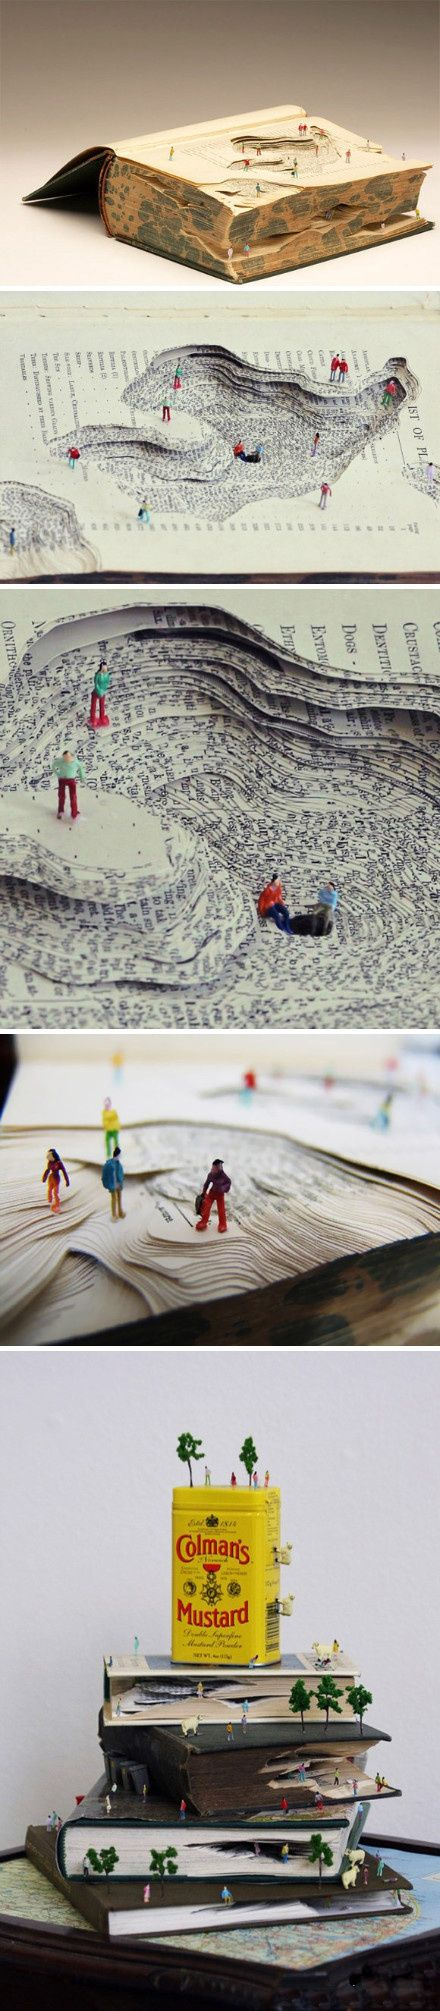 Fictional Landscapes by Kyle Kirkpatrick #Diorama #Books #Landscape- reminds me Maya Lim's show at the DeYoung